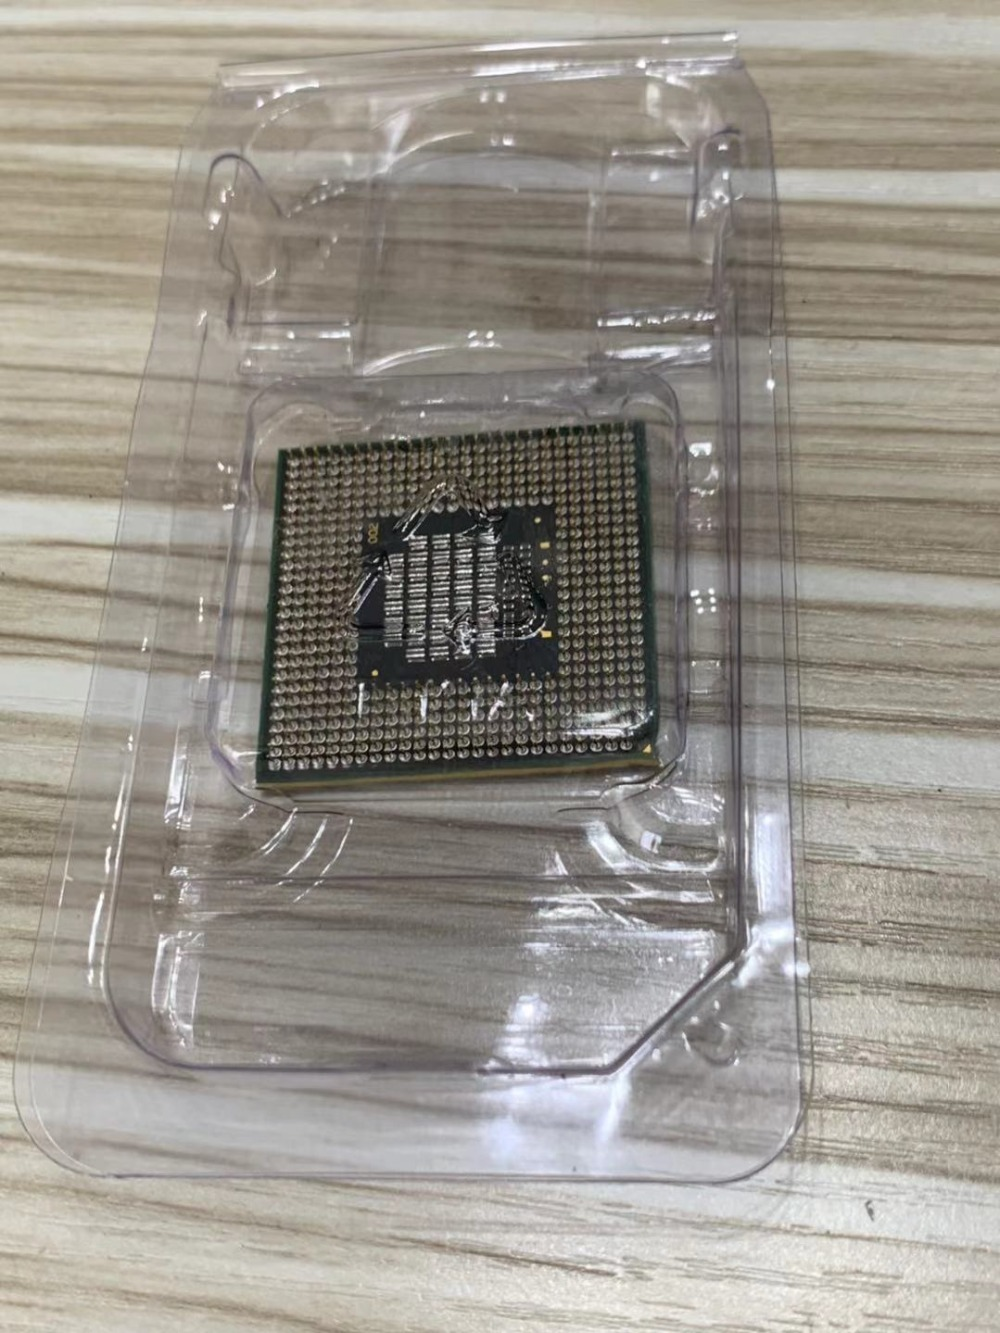 T7300 CPU 4M Socket 479 Cache/2.0GHz/800/Dual-Core processor support 965 free shipping intel cpu laptop core 2 duo t7800 cpu 4m socket 479 cache 2 6ghz 800 dual core laptop processor